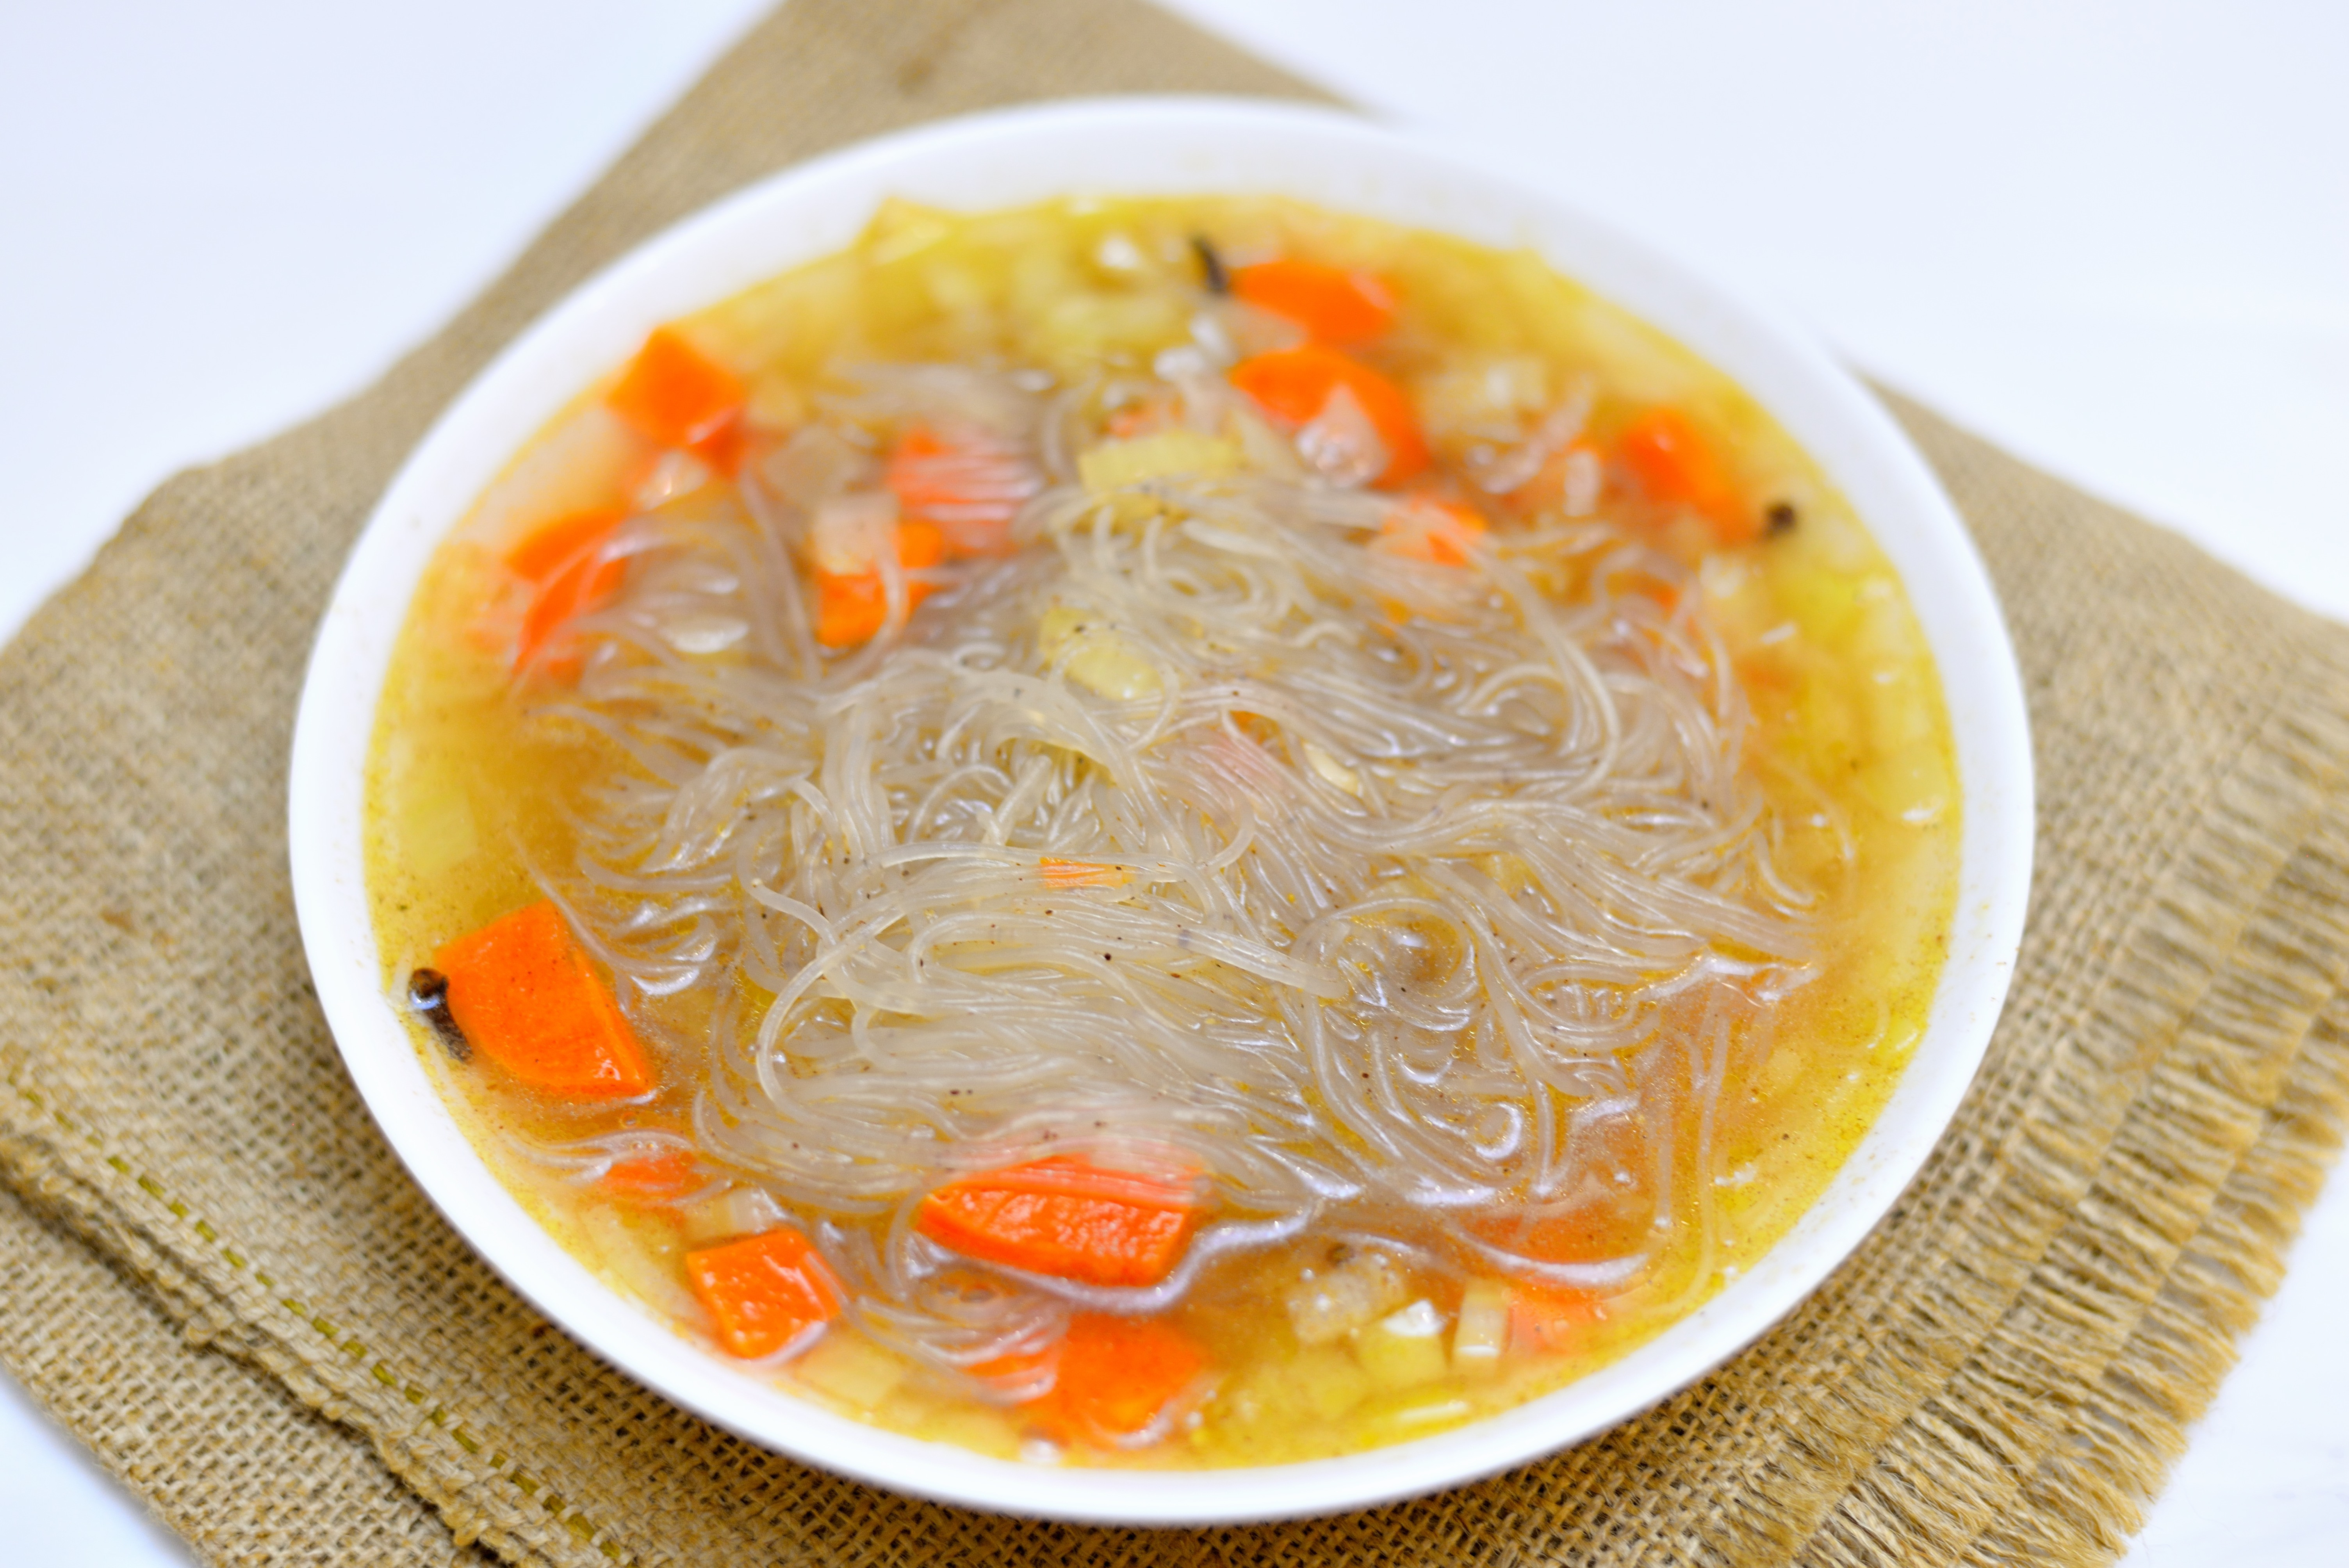 Healthy Soups To Make  3 Ways to Make Healthy Noodle Soups wikiHow